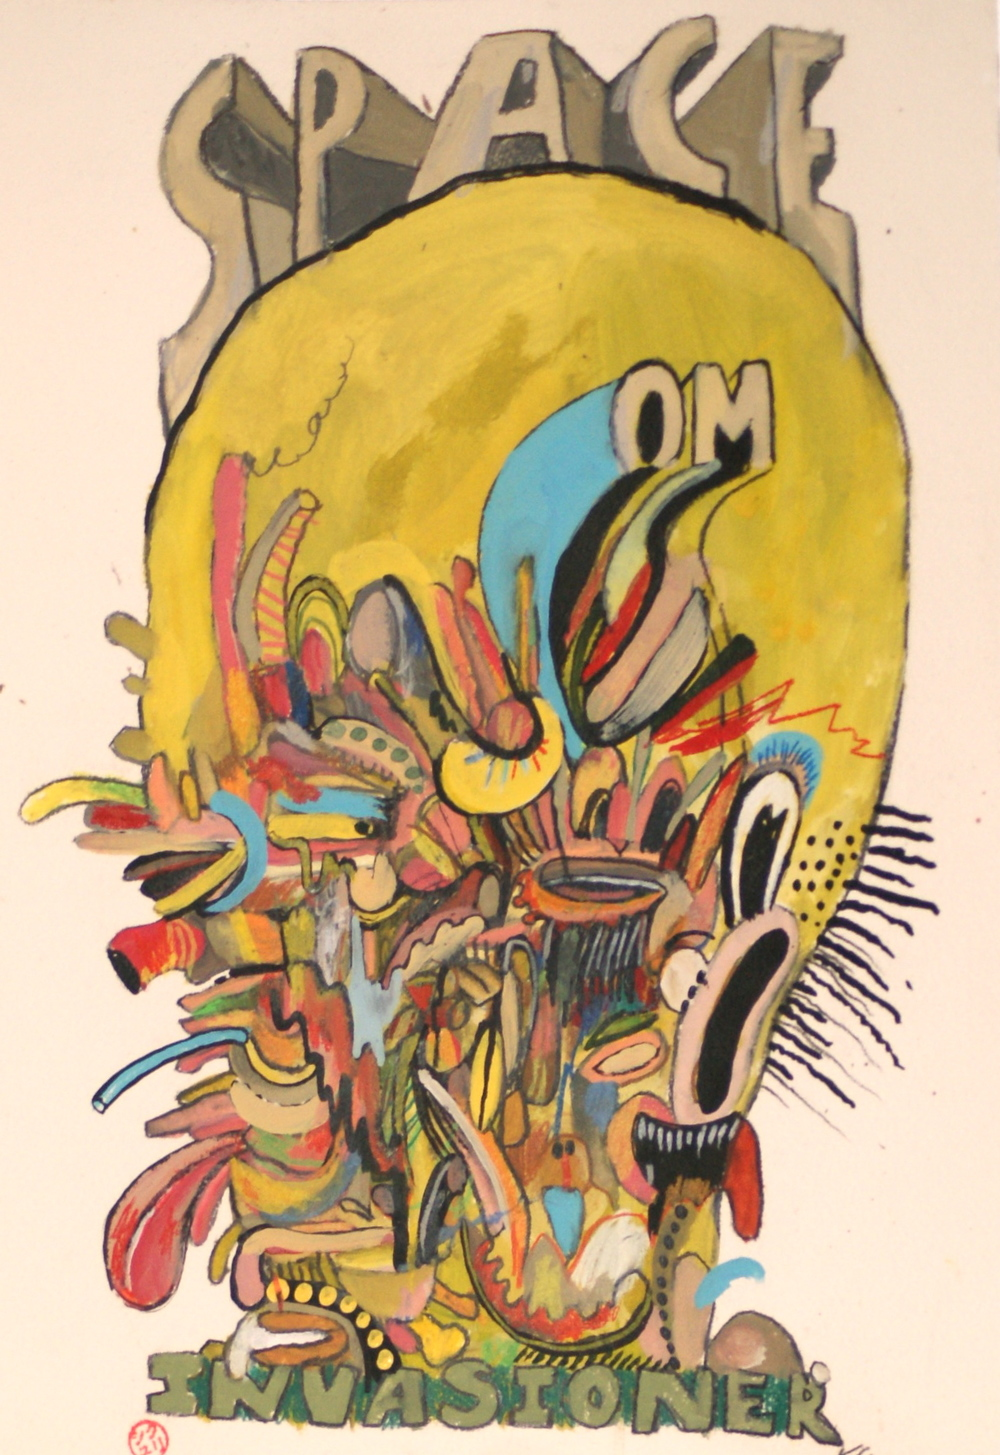 Space Om Invasioner, 2015 [private collection Brooklyn, NY] Acrylic on paper 16 x 12 in.